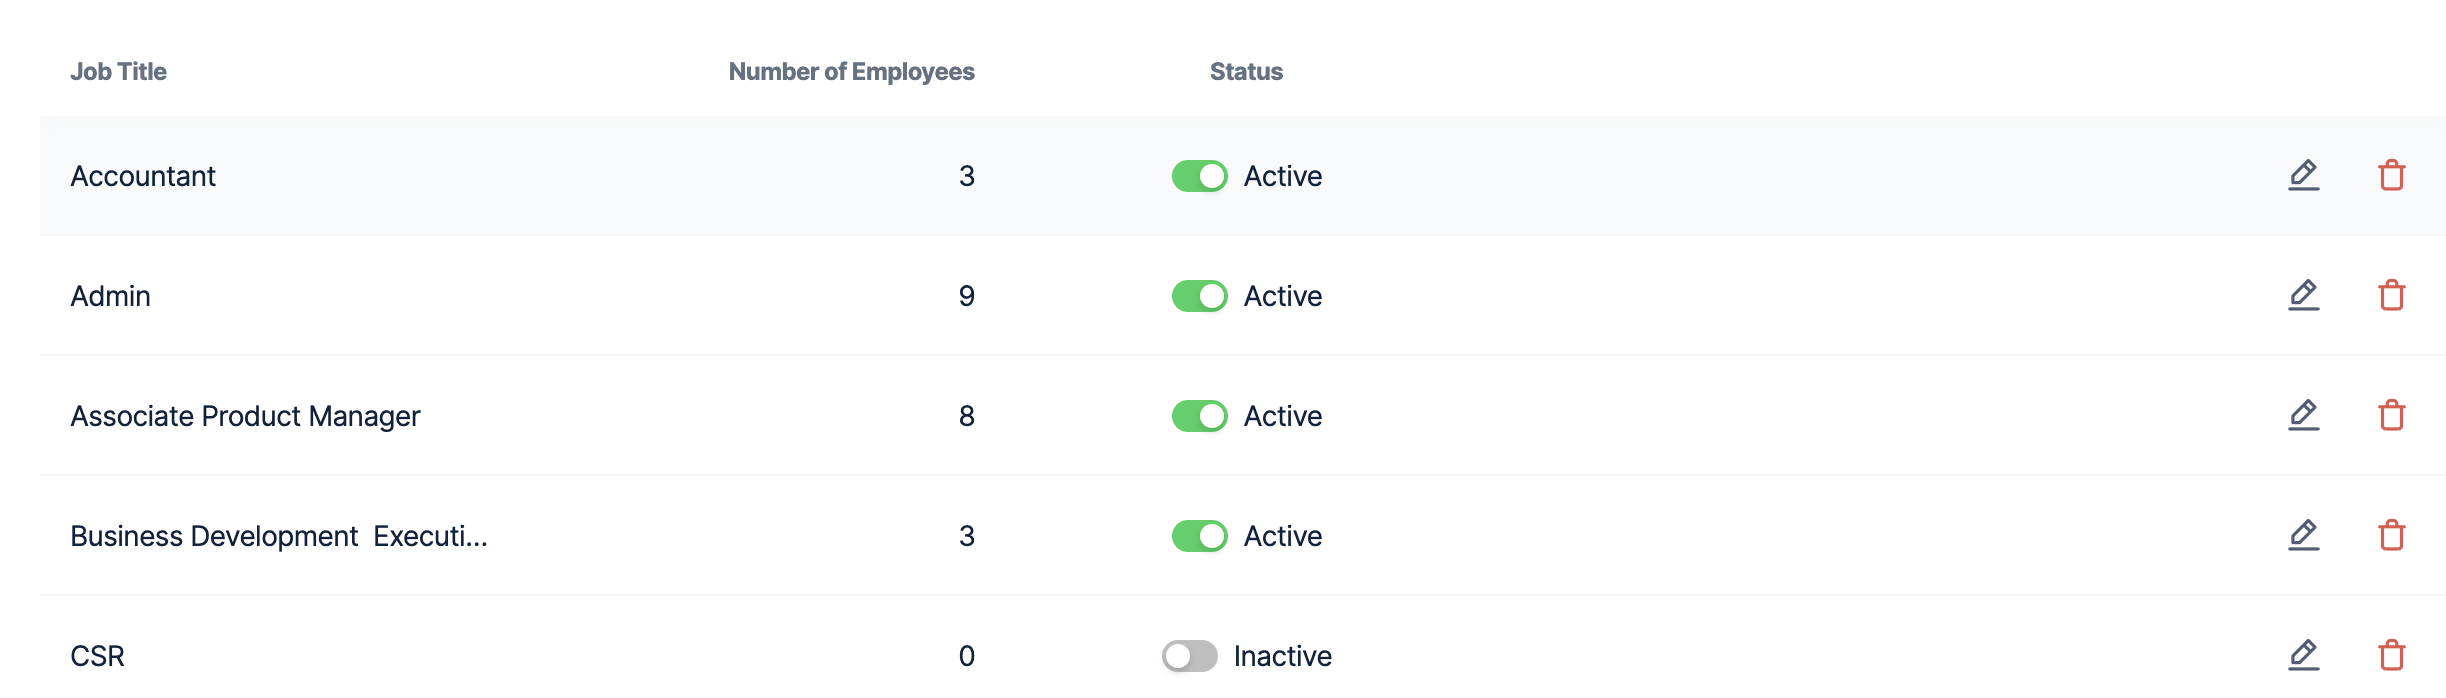 Only job titles with 0 number of employees can be deactivated